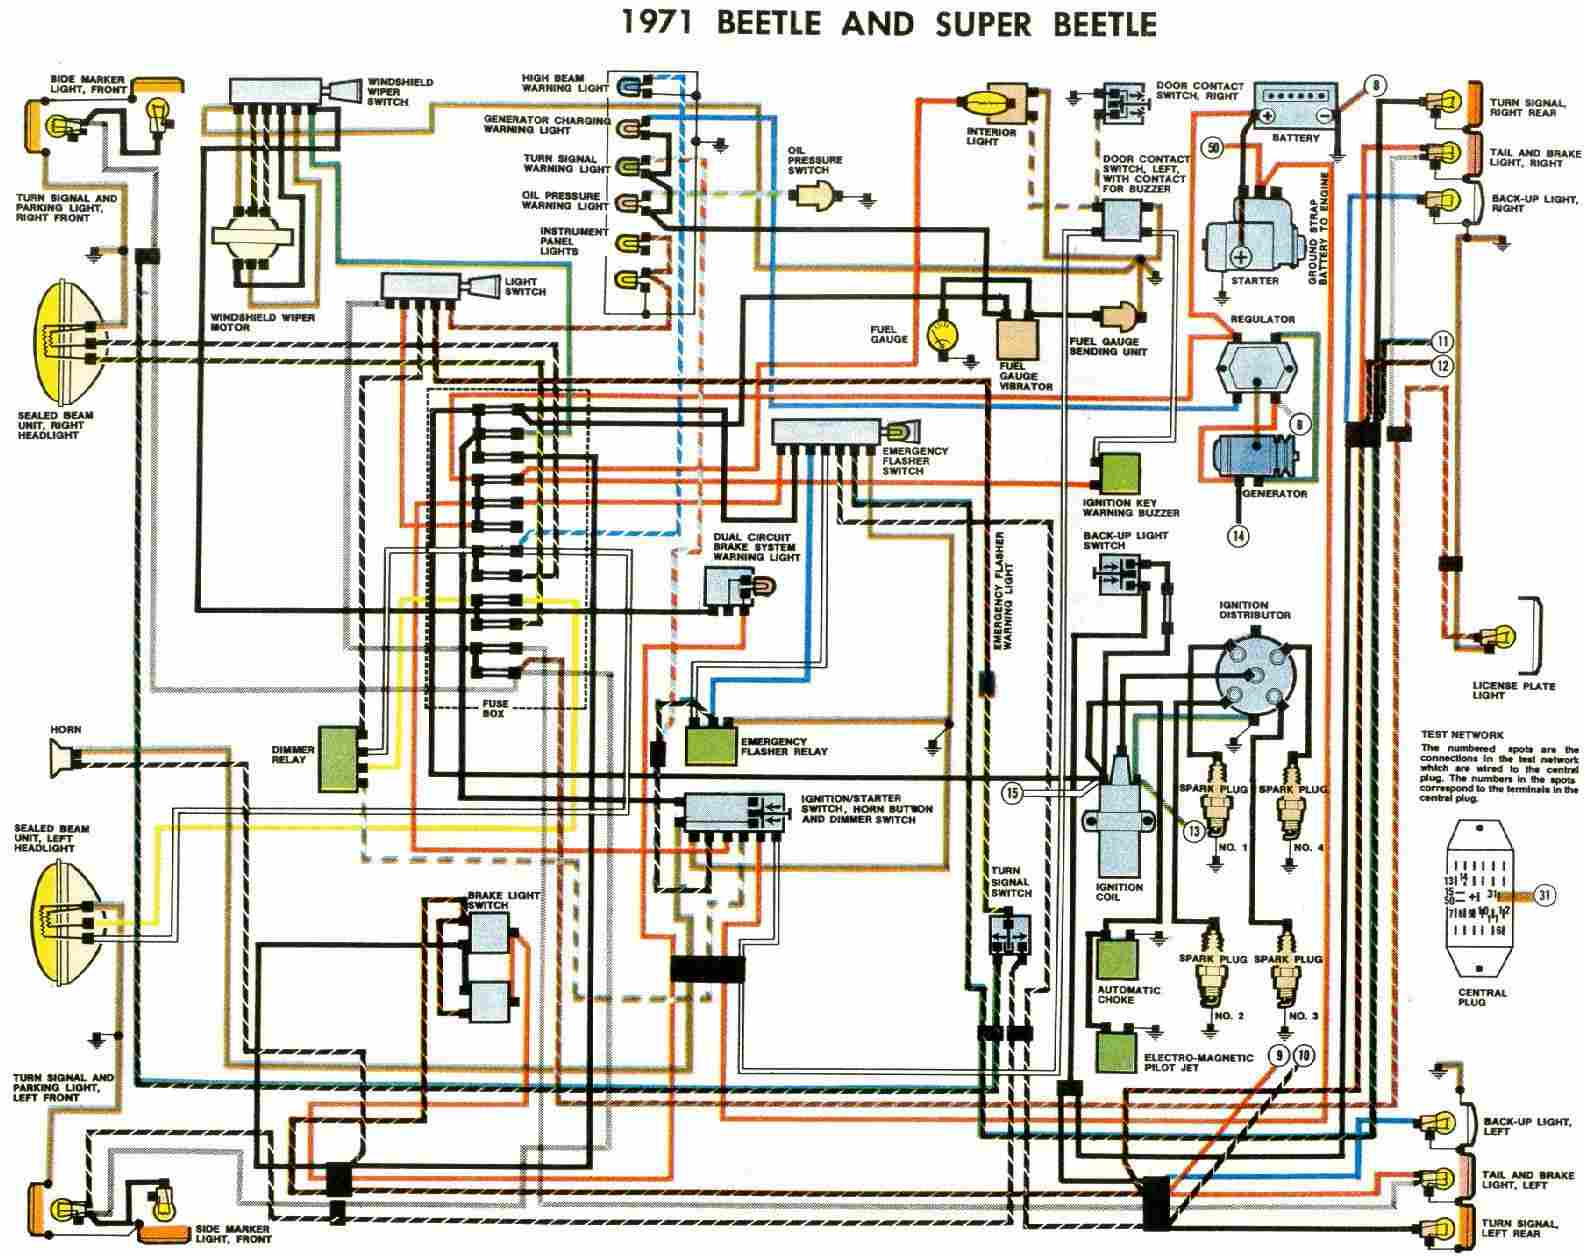 VW+Beetle+and+Super+Beetle+1971+Electrical+Wiring+Diagram wiring diagram for 1971 vw beetle readingrat net 1963 vw wiring diagram at alyssarenee.co